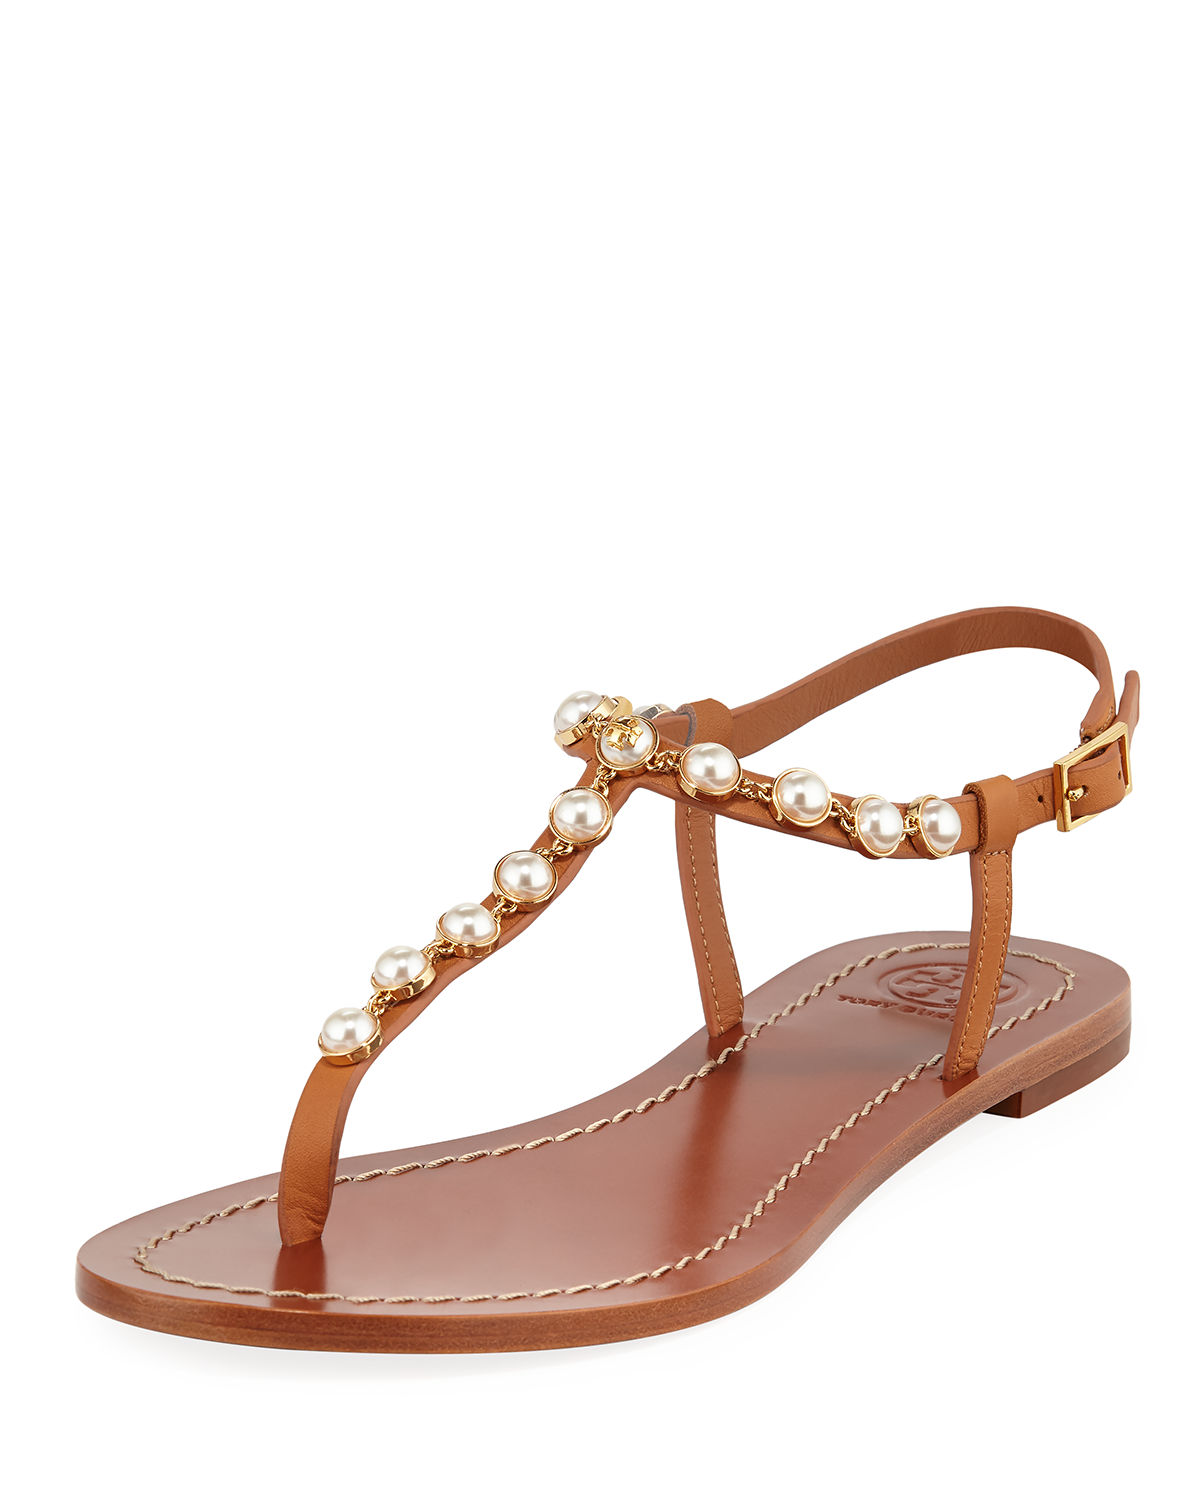 Tory Burch Emmy Pearly Beaded Sandals